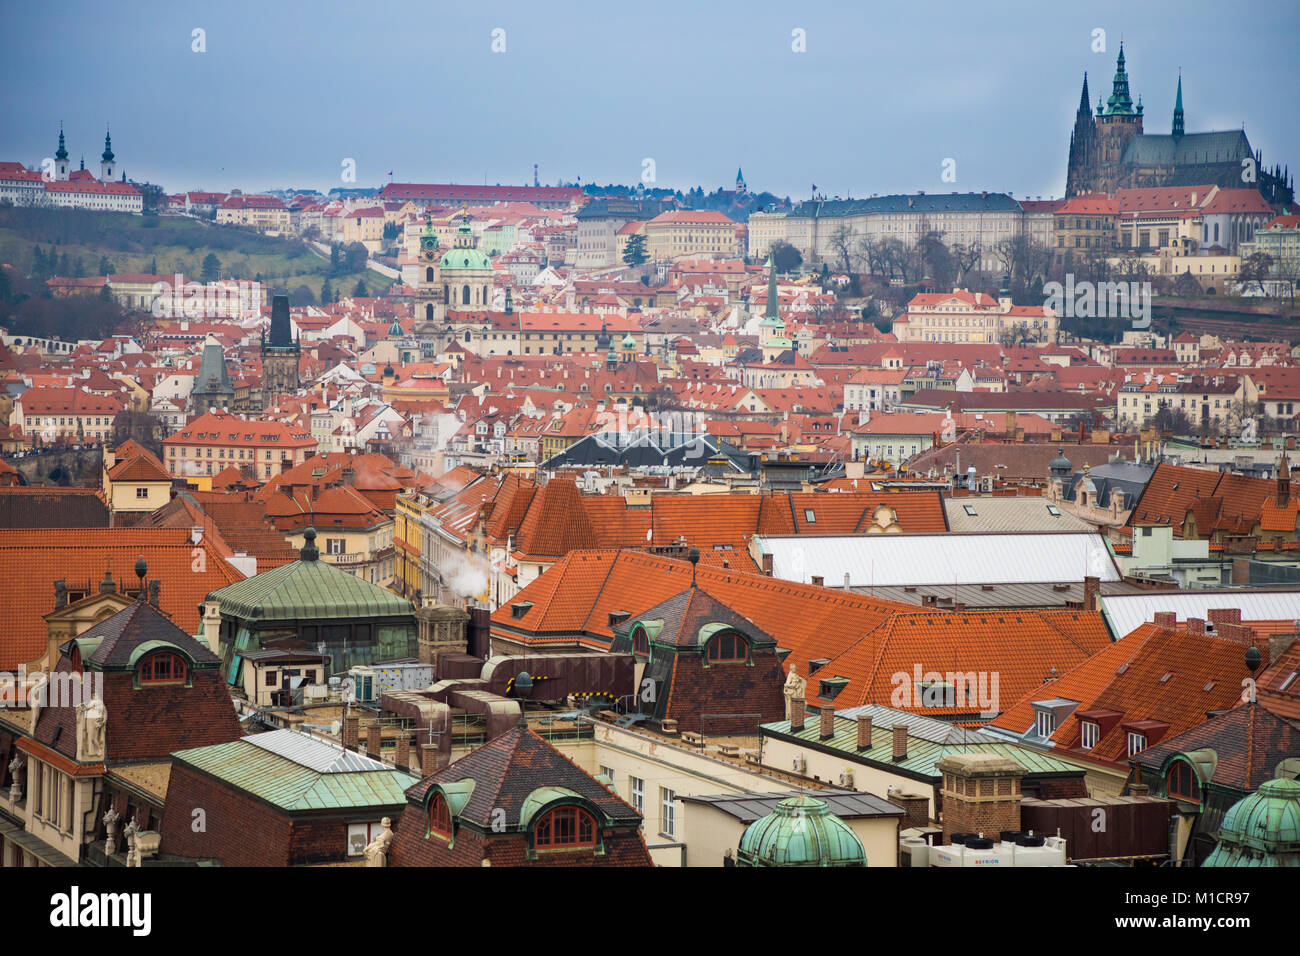 Prague castle and red roofs of old town in evening time, Czech Republic - Stock Image